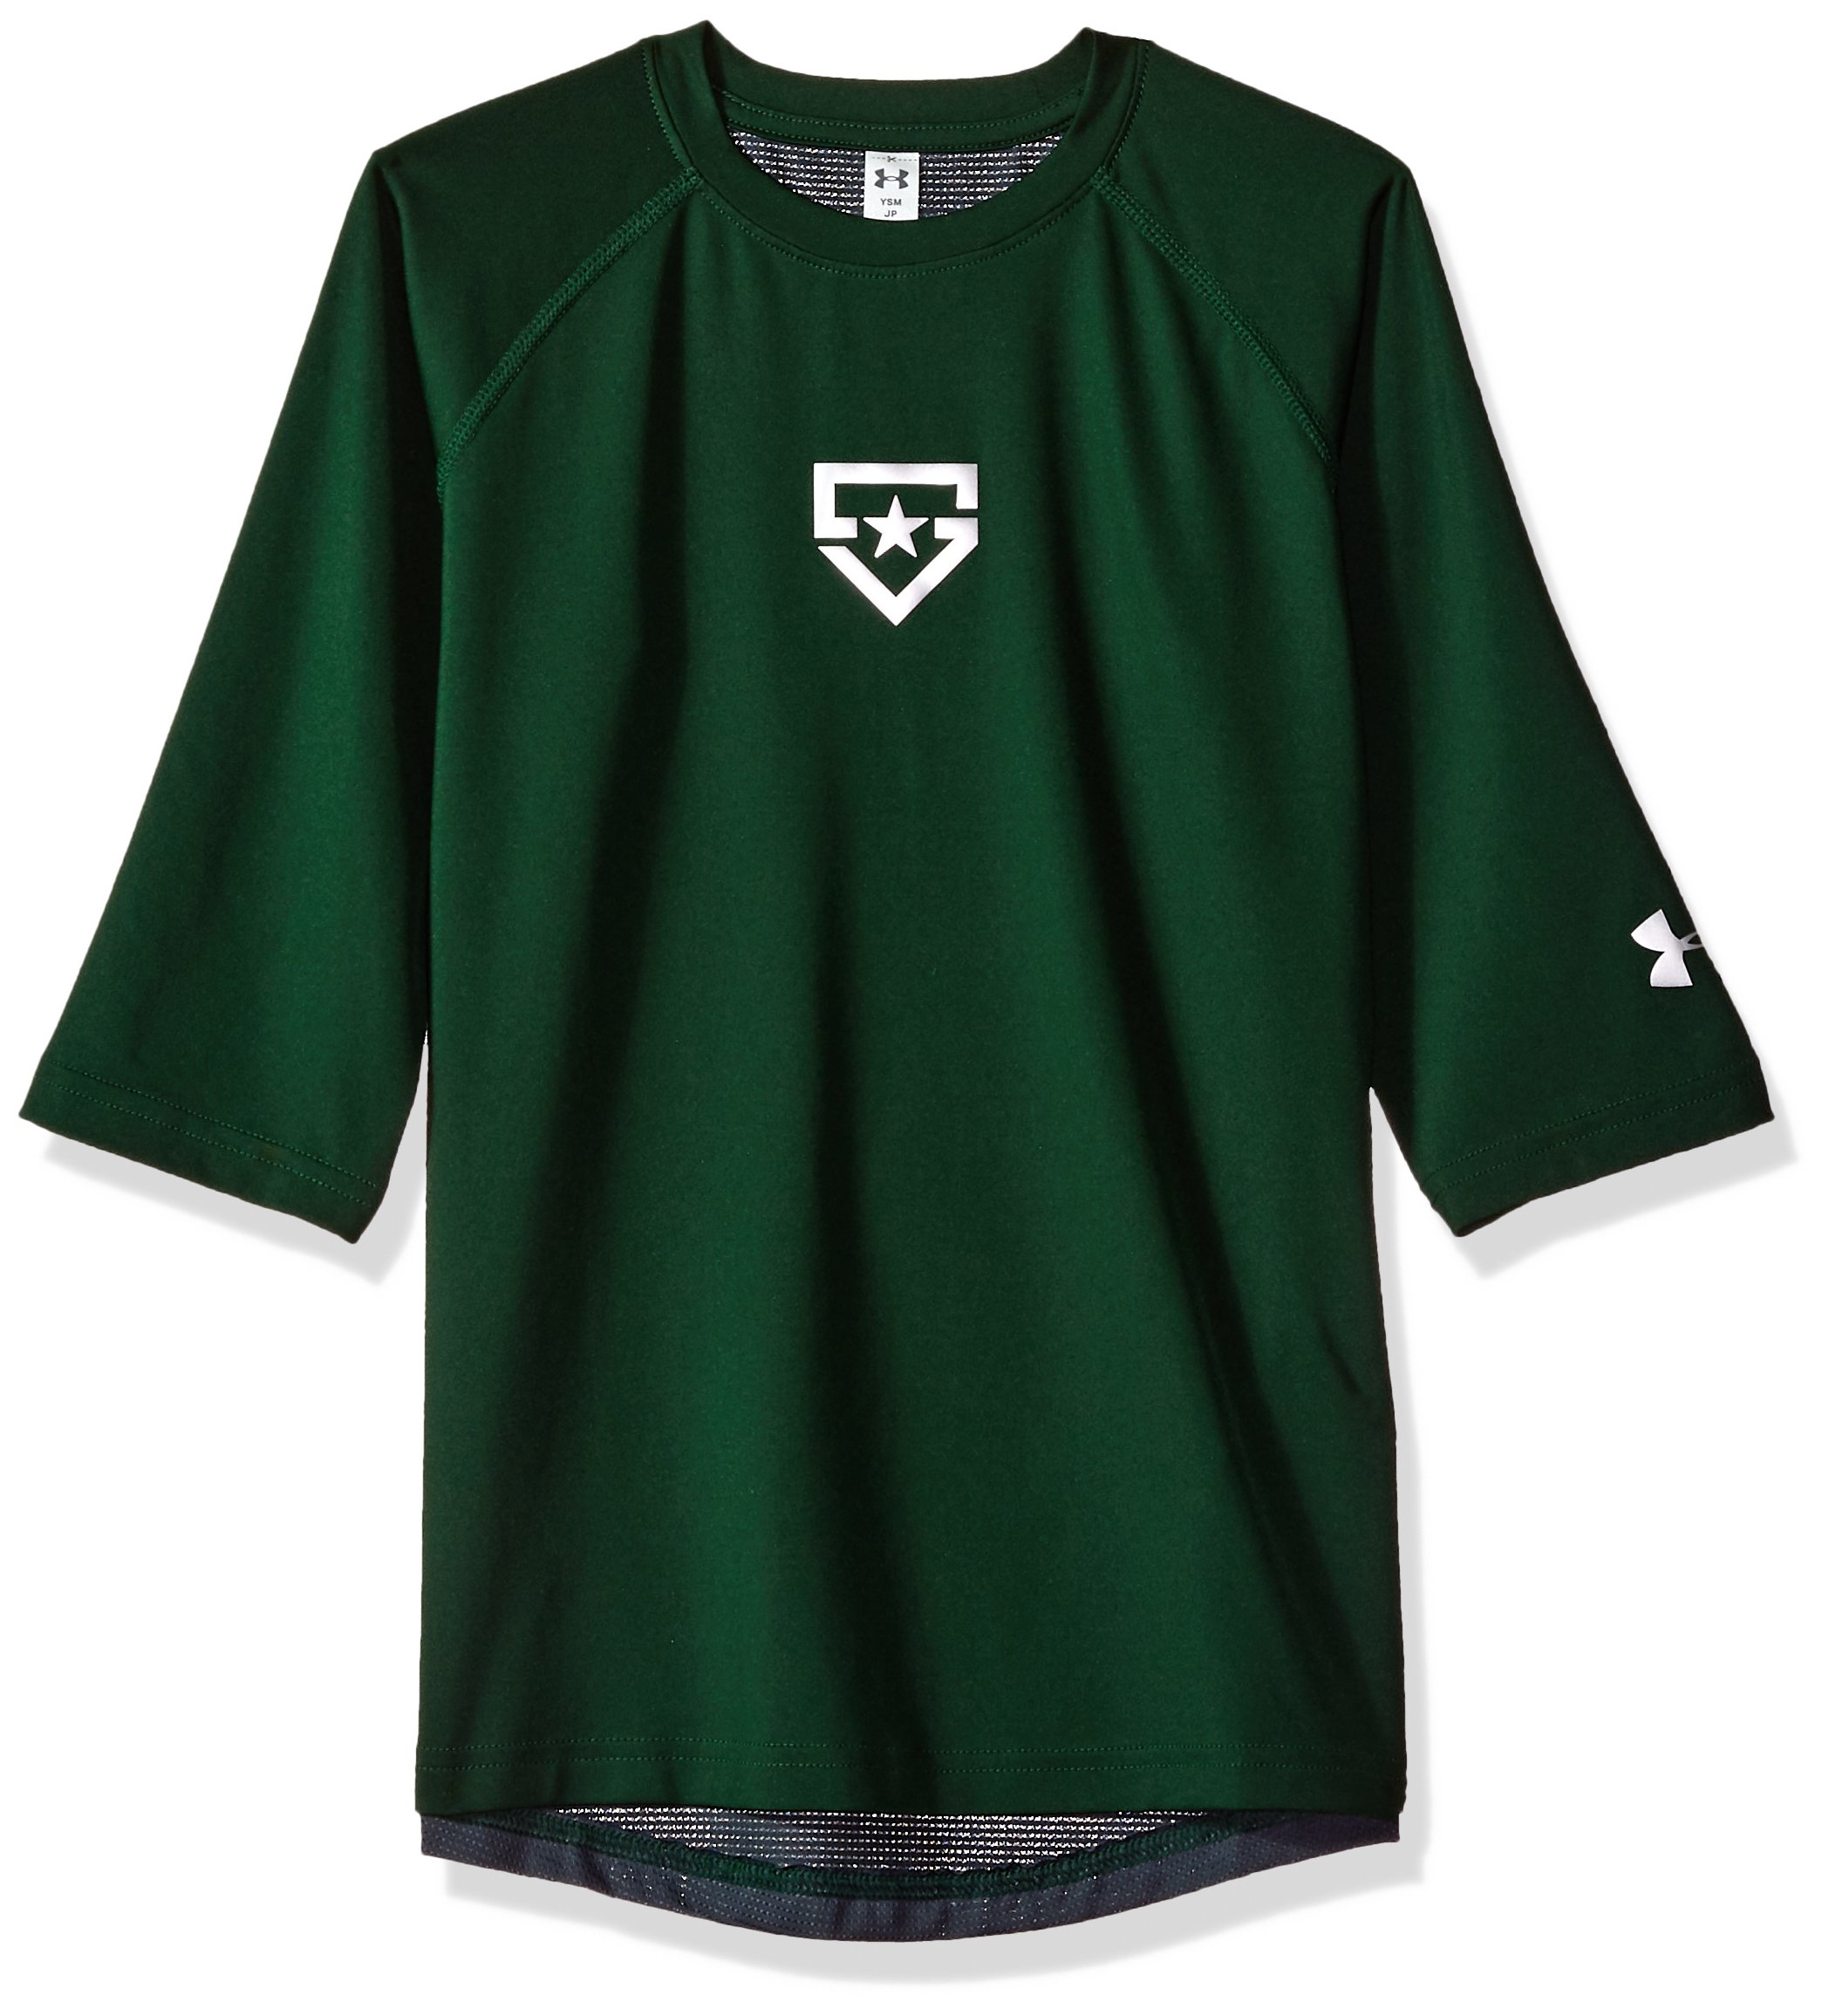 Boy's Under Armour Boys' Heater 3/4 sleeve T-Shirt, Forest Green (301)/Silver, Youth Large by Under Armour